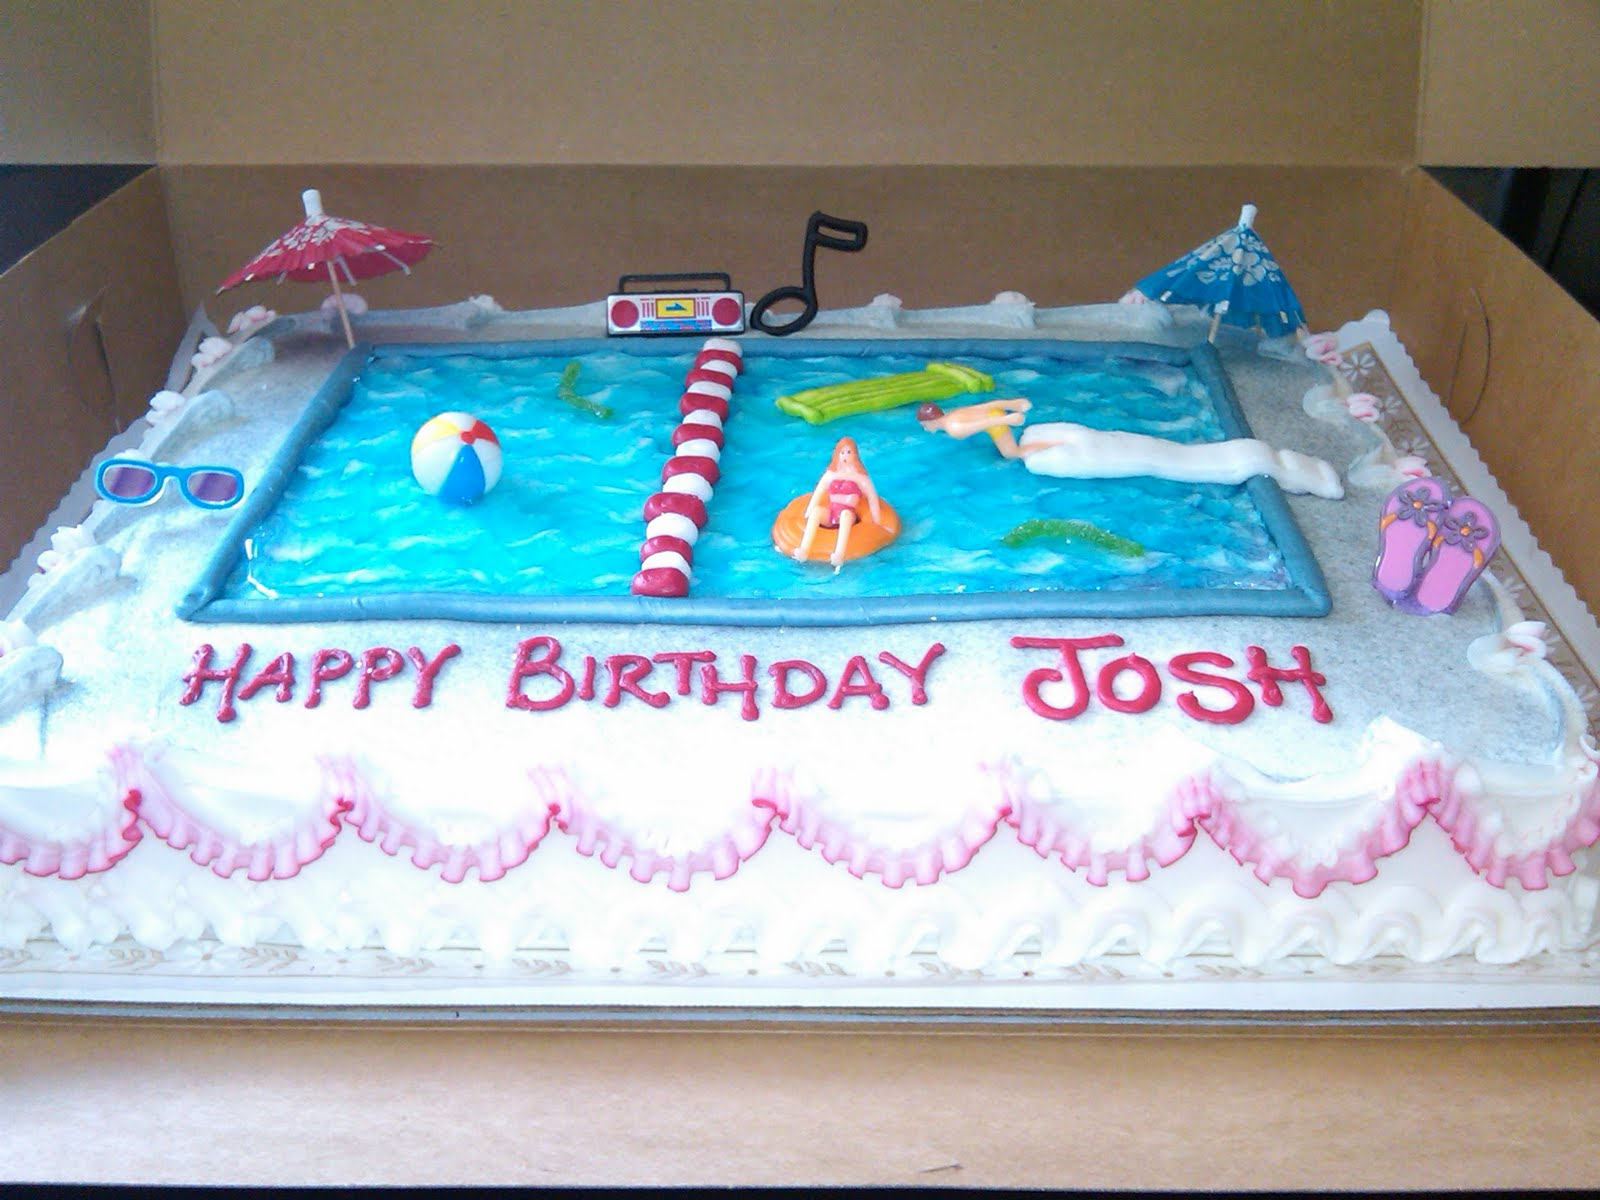 Swimming Pool Cake Ideas : Swimming pool cake ideas and designs